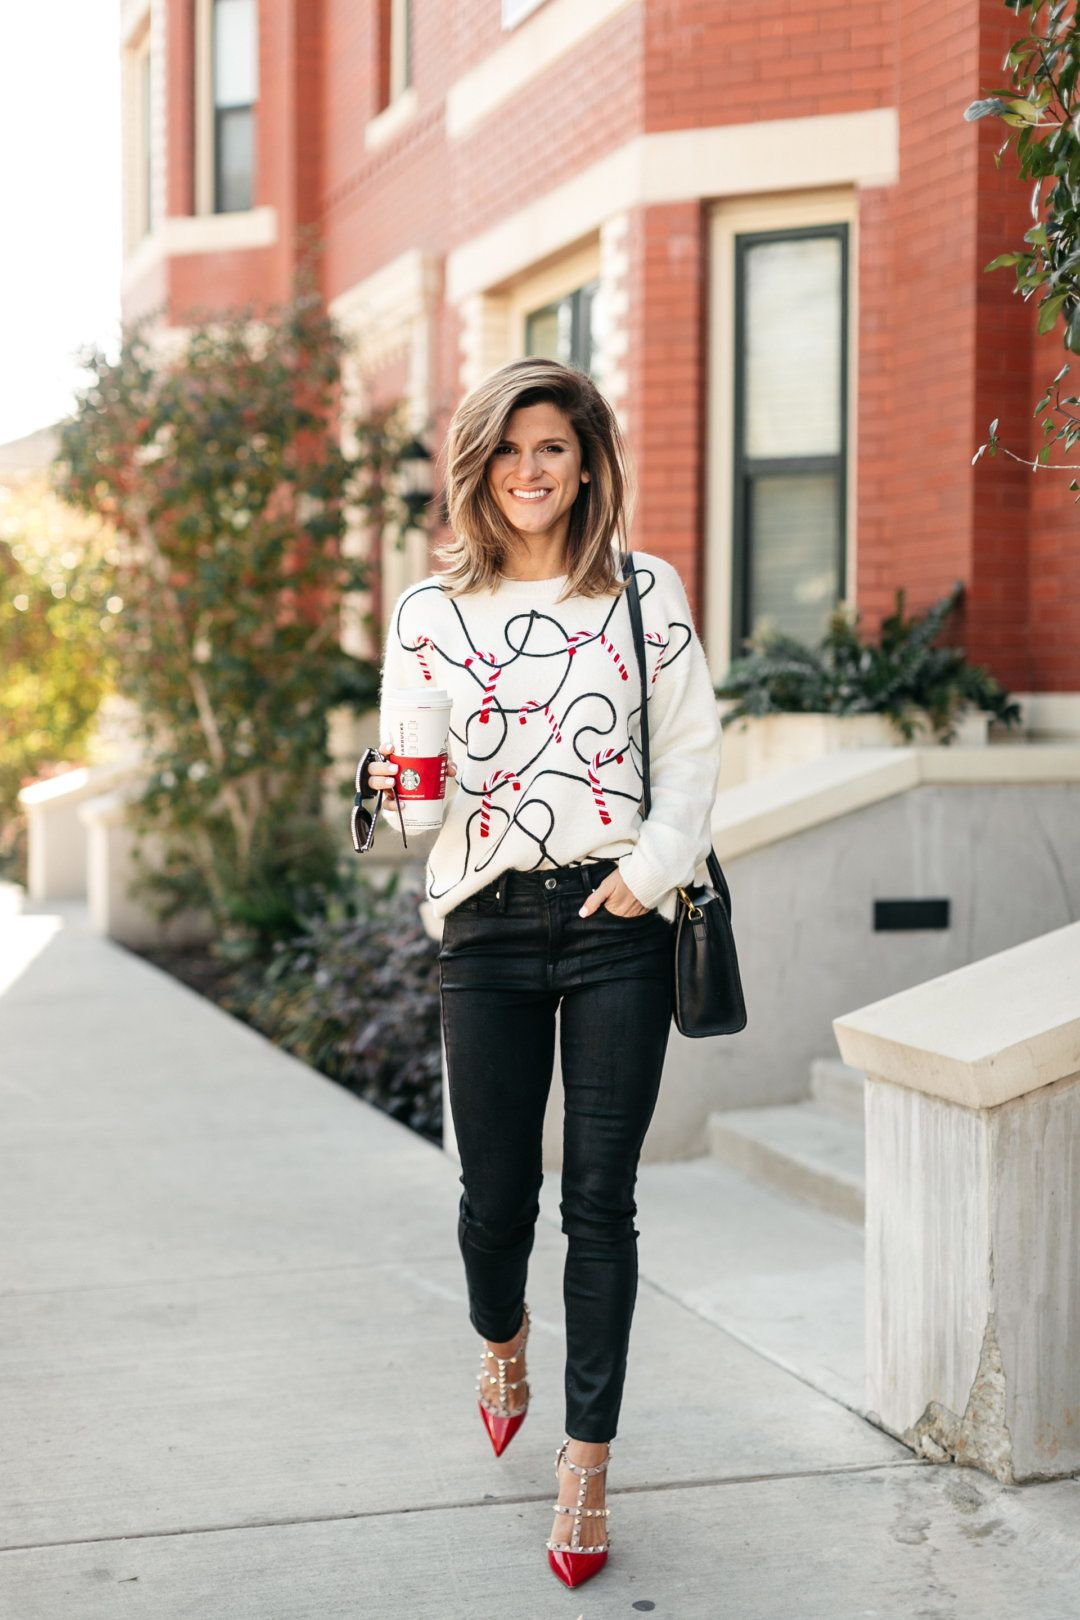 The Cutest Festive Sweater for Christmas + Random Thoughts